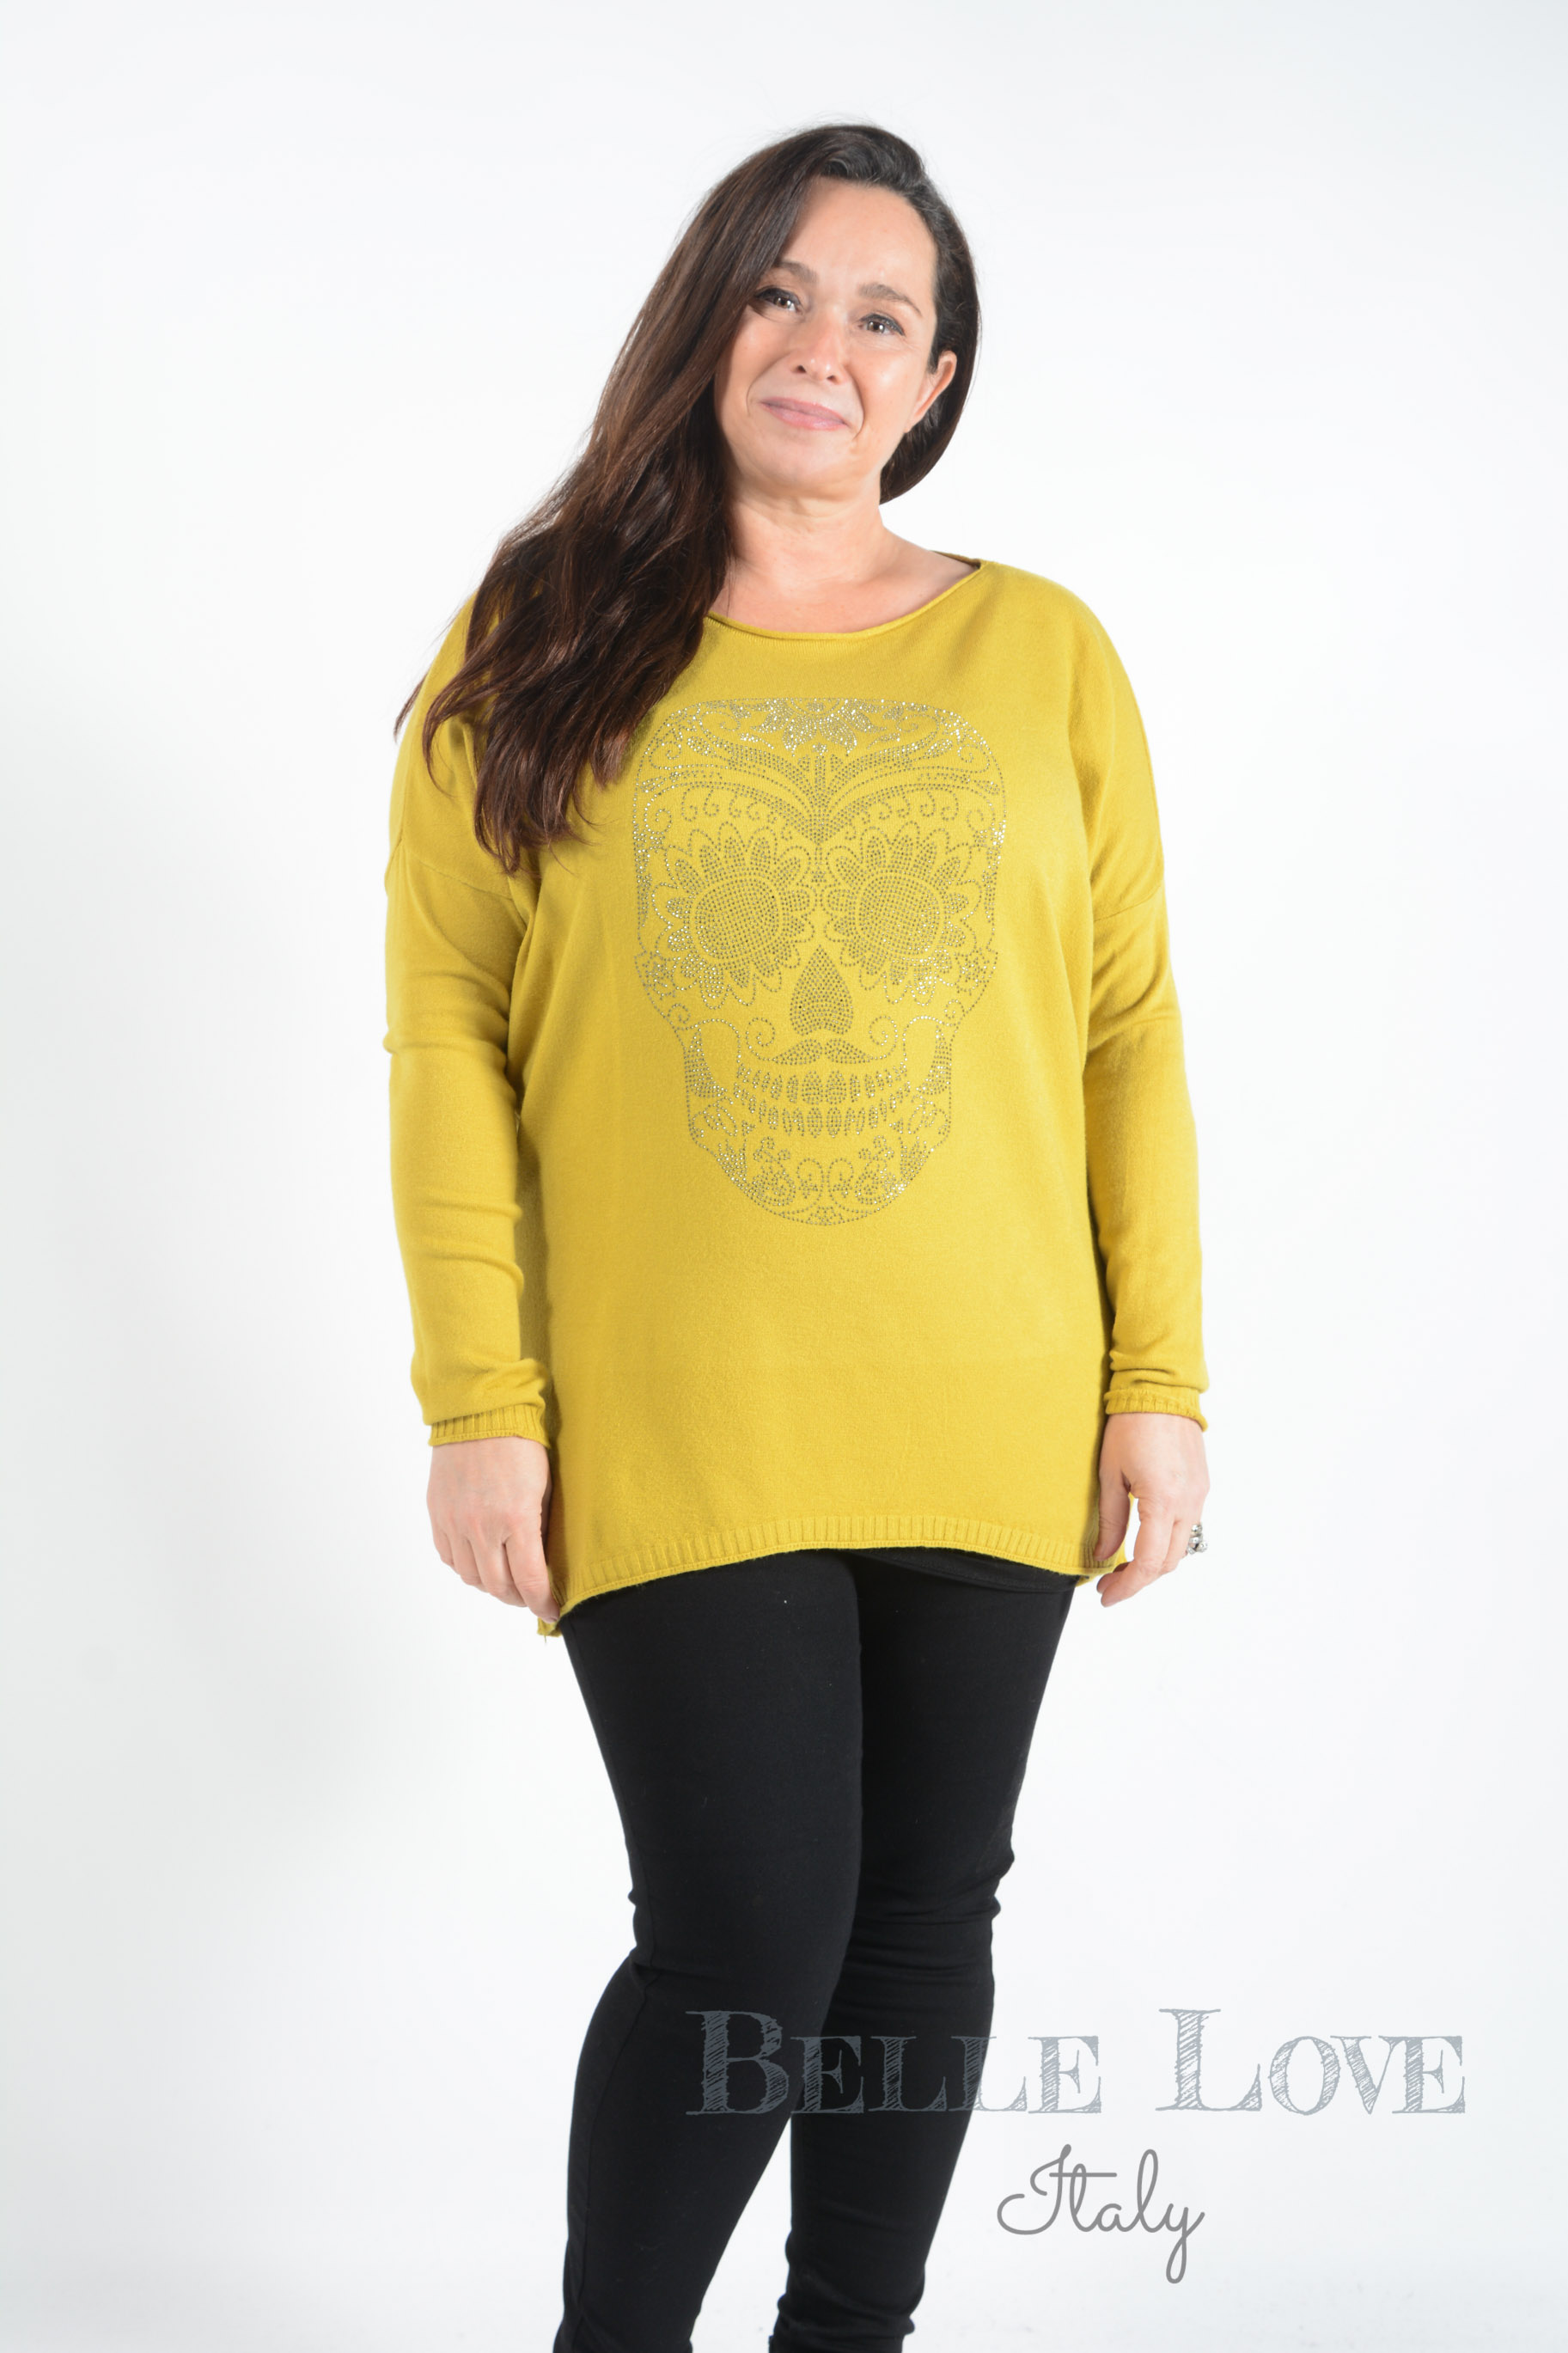 Belle Love Italy Addison Skull Top